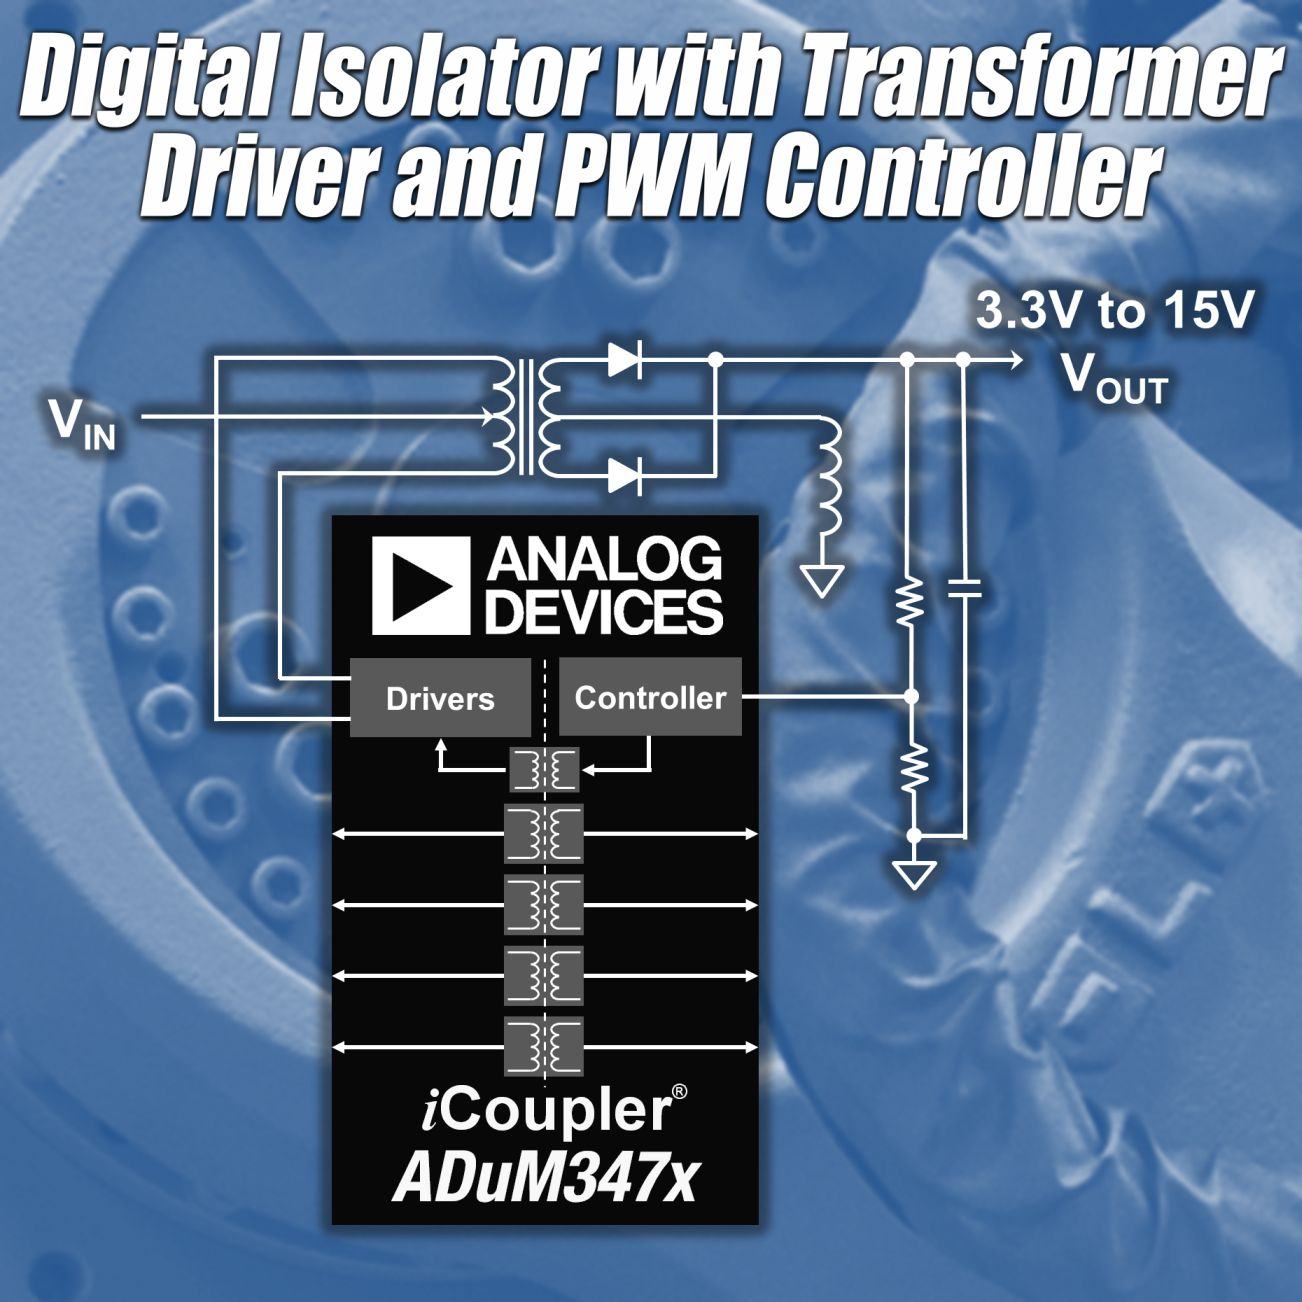 Analog Devices Introduces Digital Isolator with Integrated Transformer Driver and PWM Controller